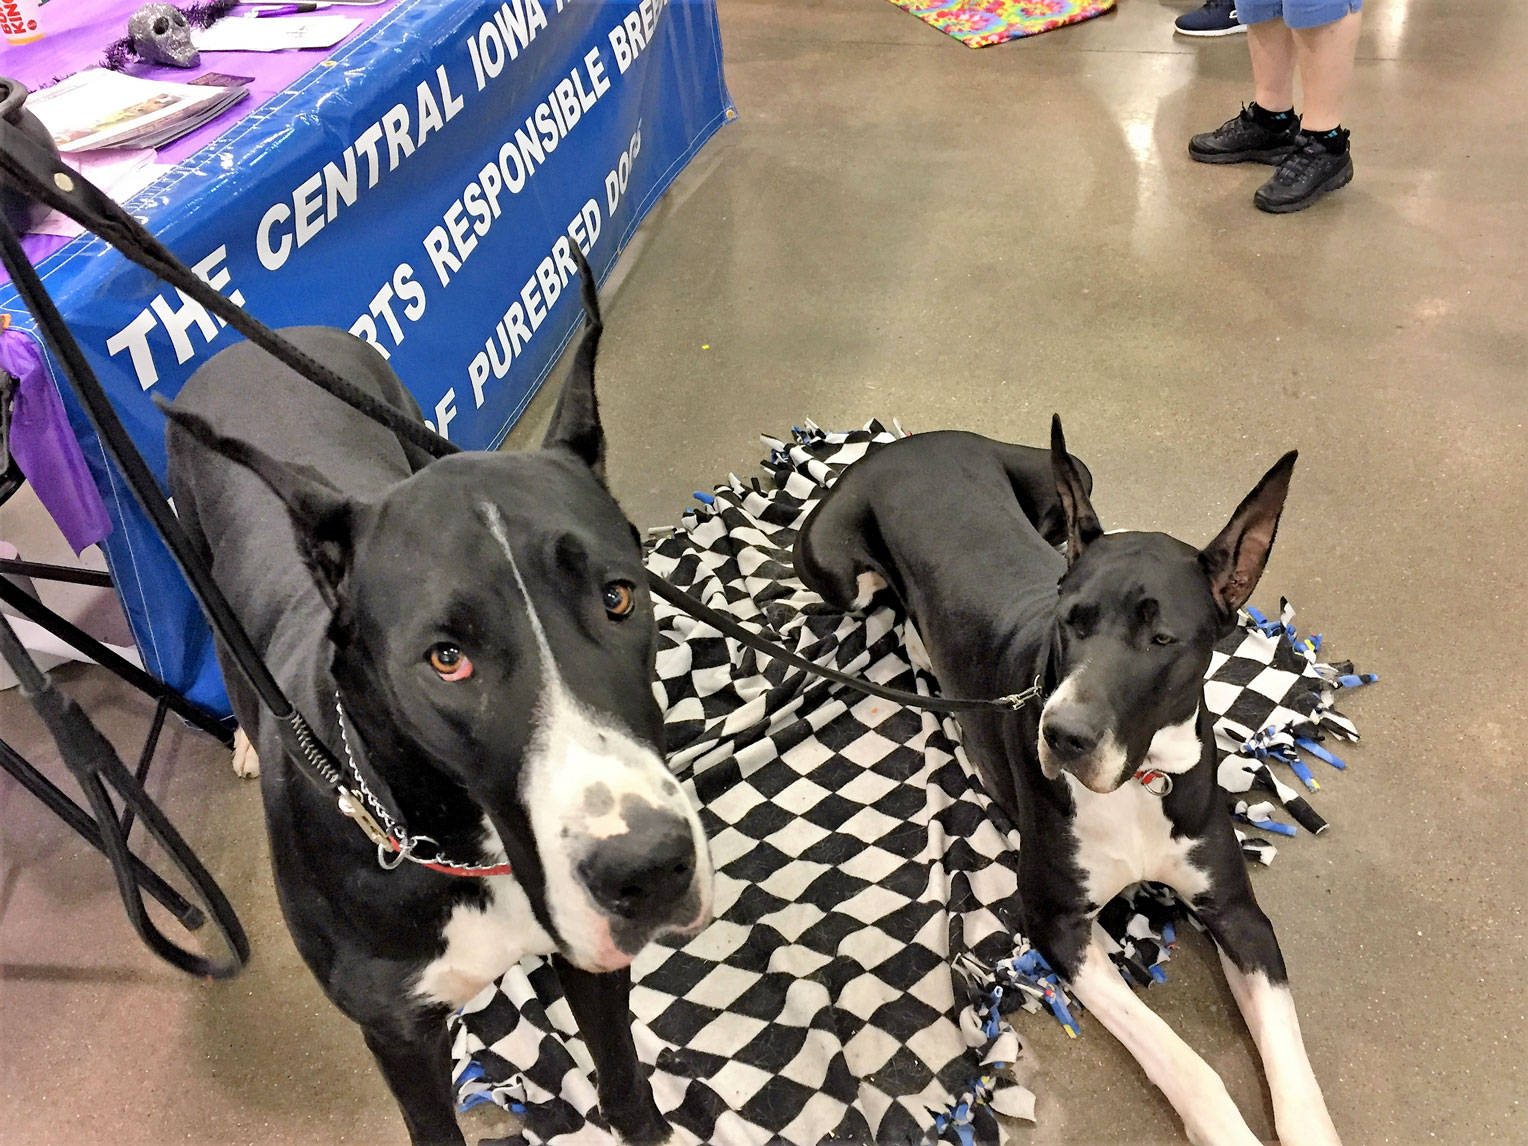 Great Dane sisters, Gigi and Heidi, at the Pet Expo